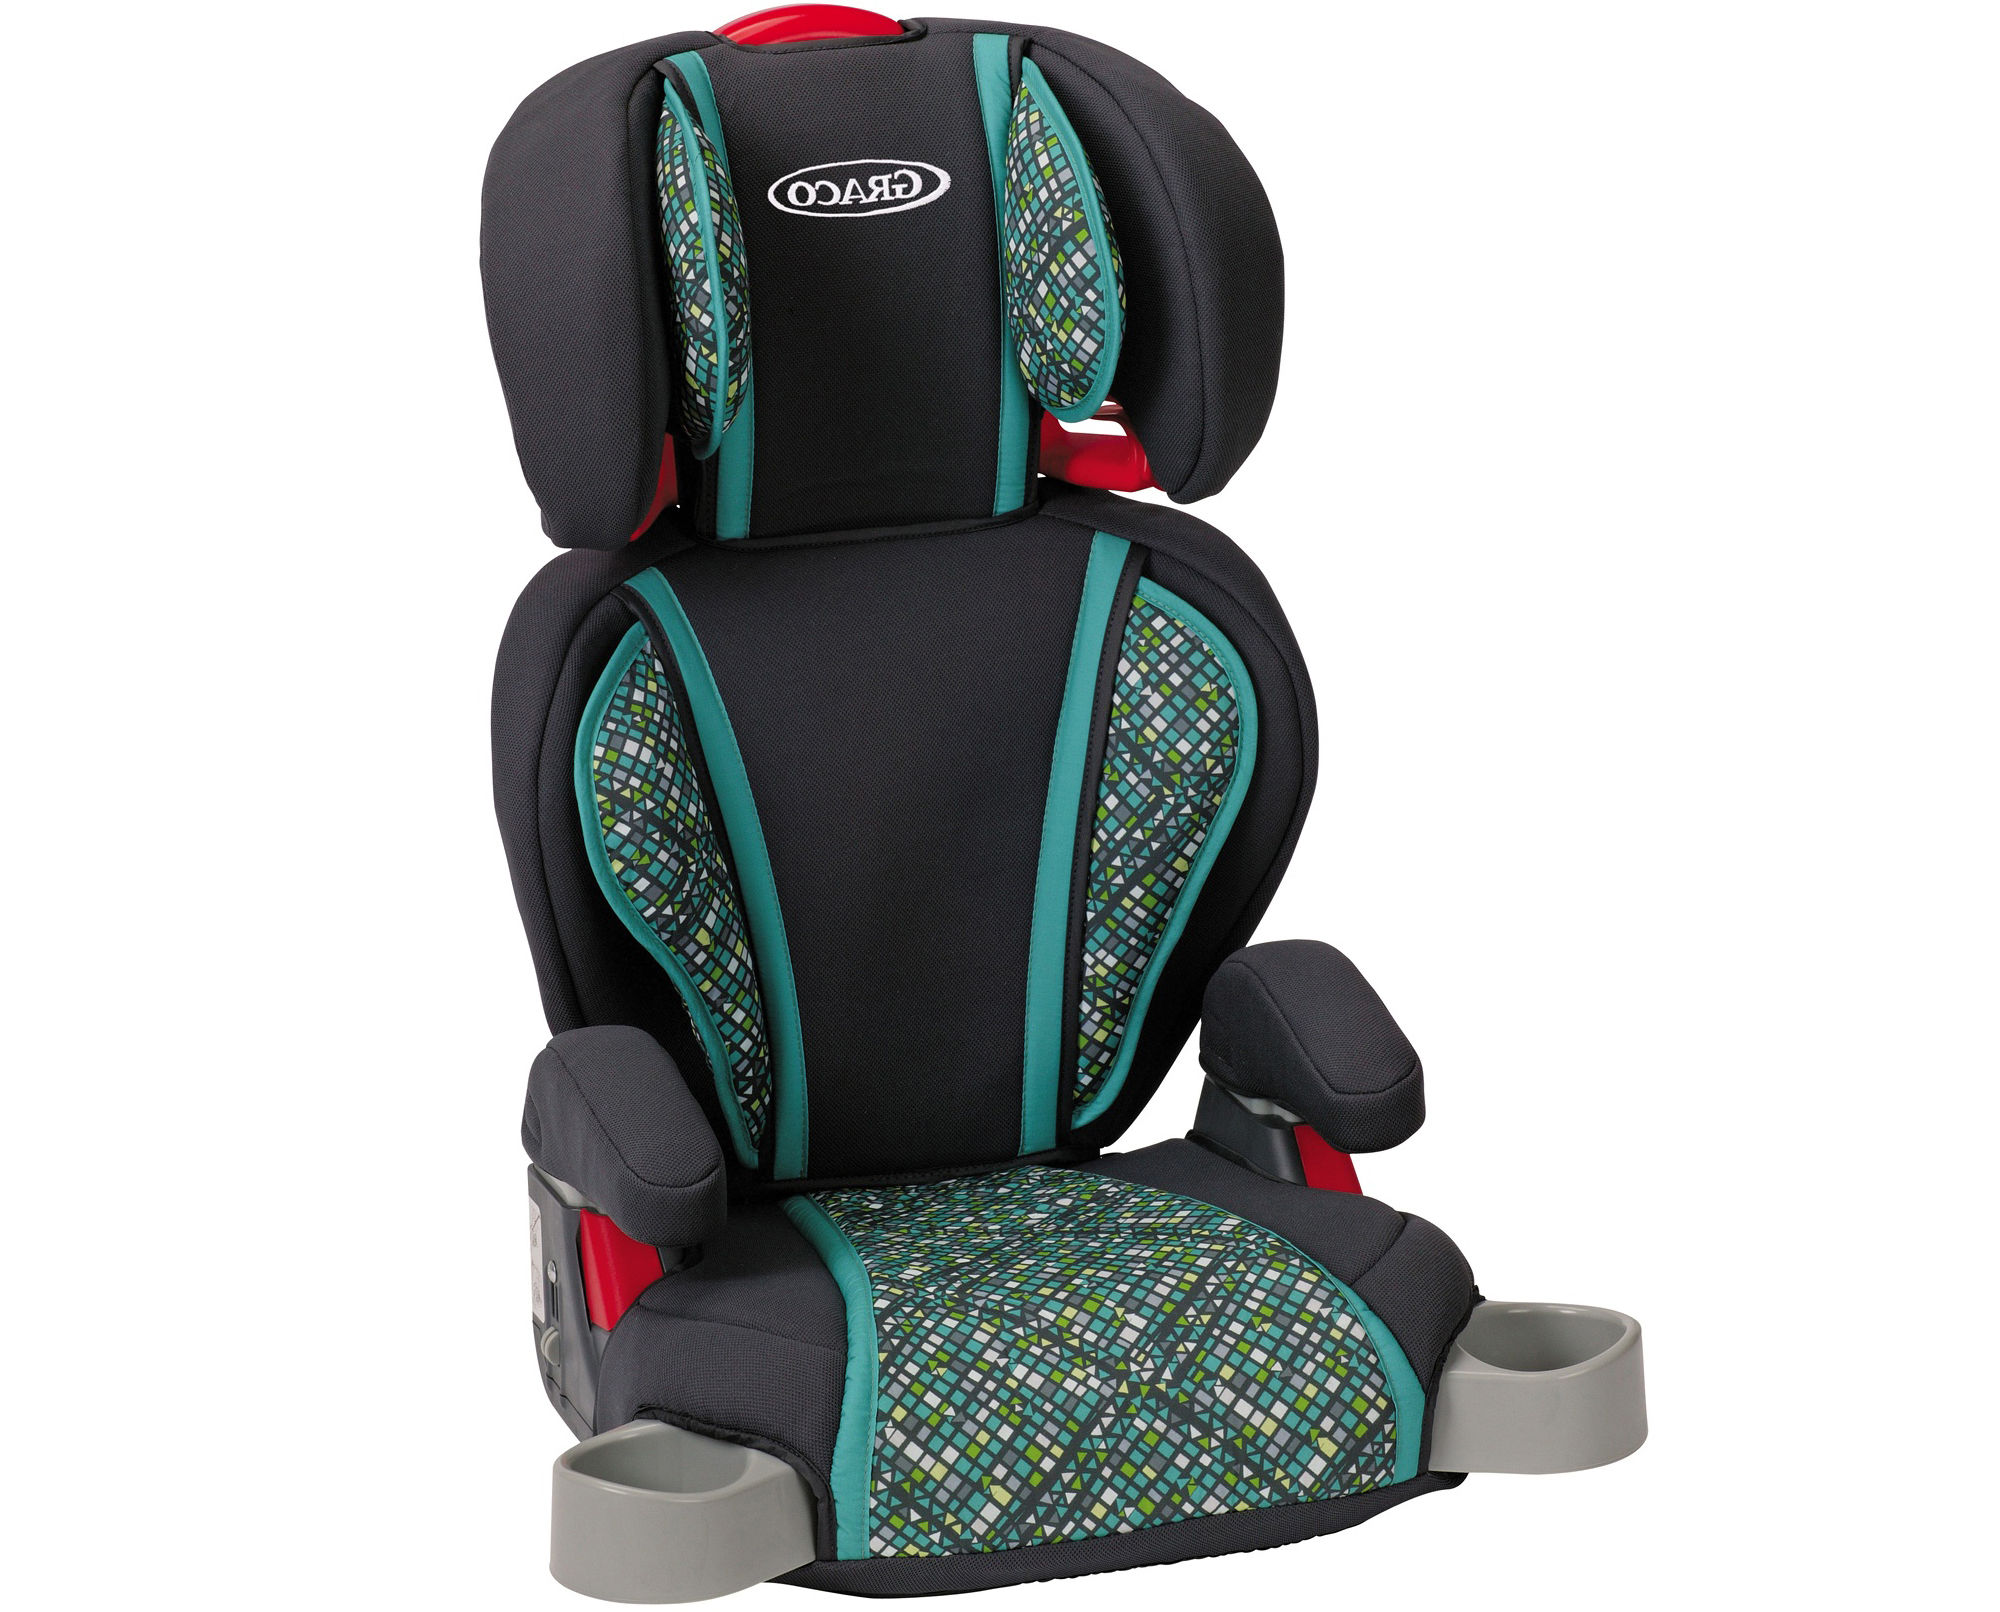 Get Graco Highback Turbobooster Car Seat Mosaic Offer